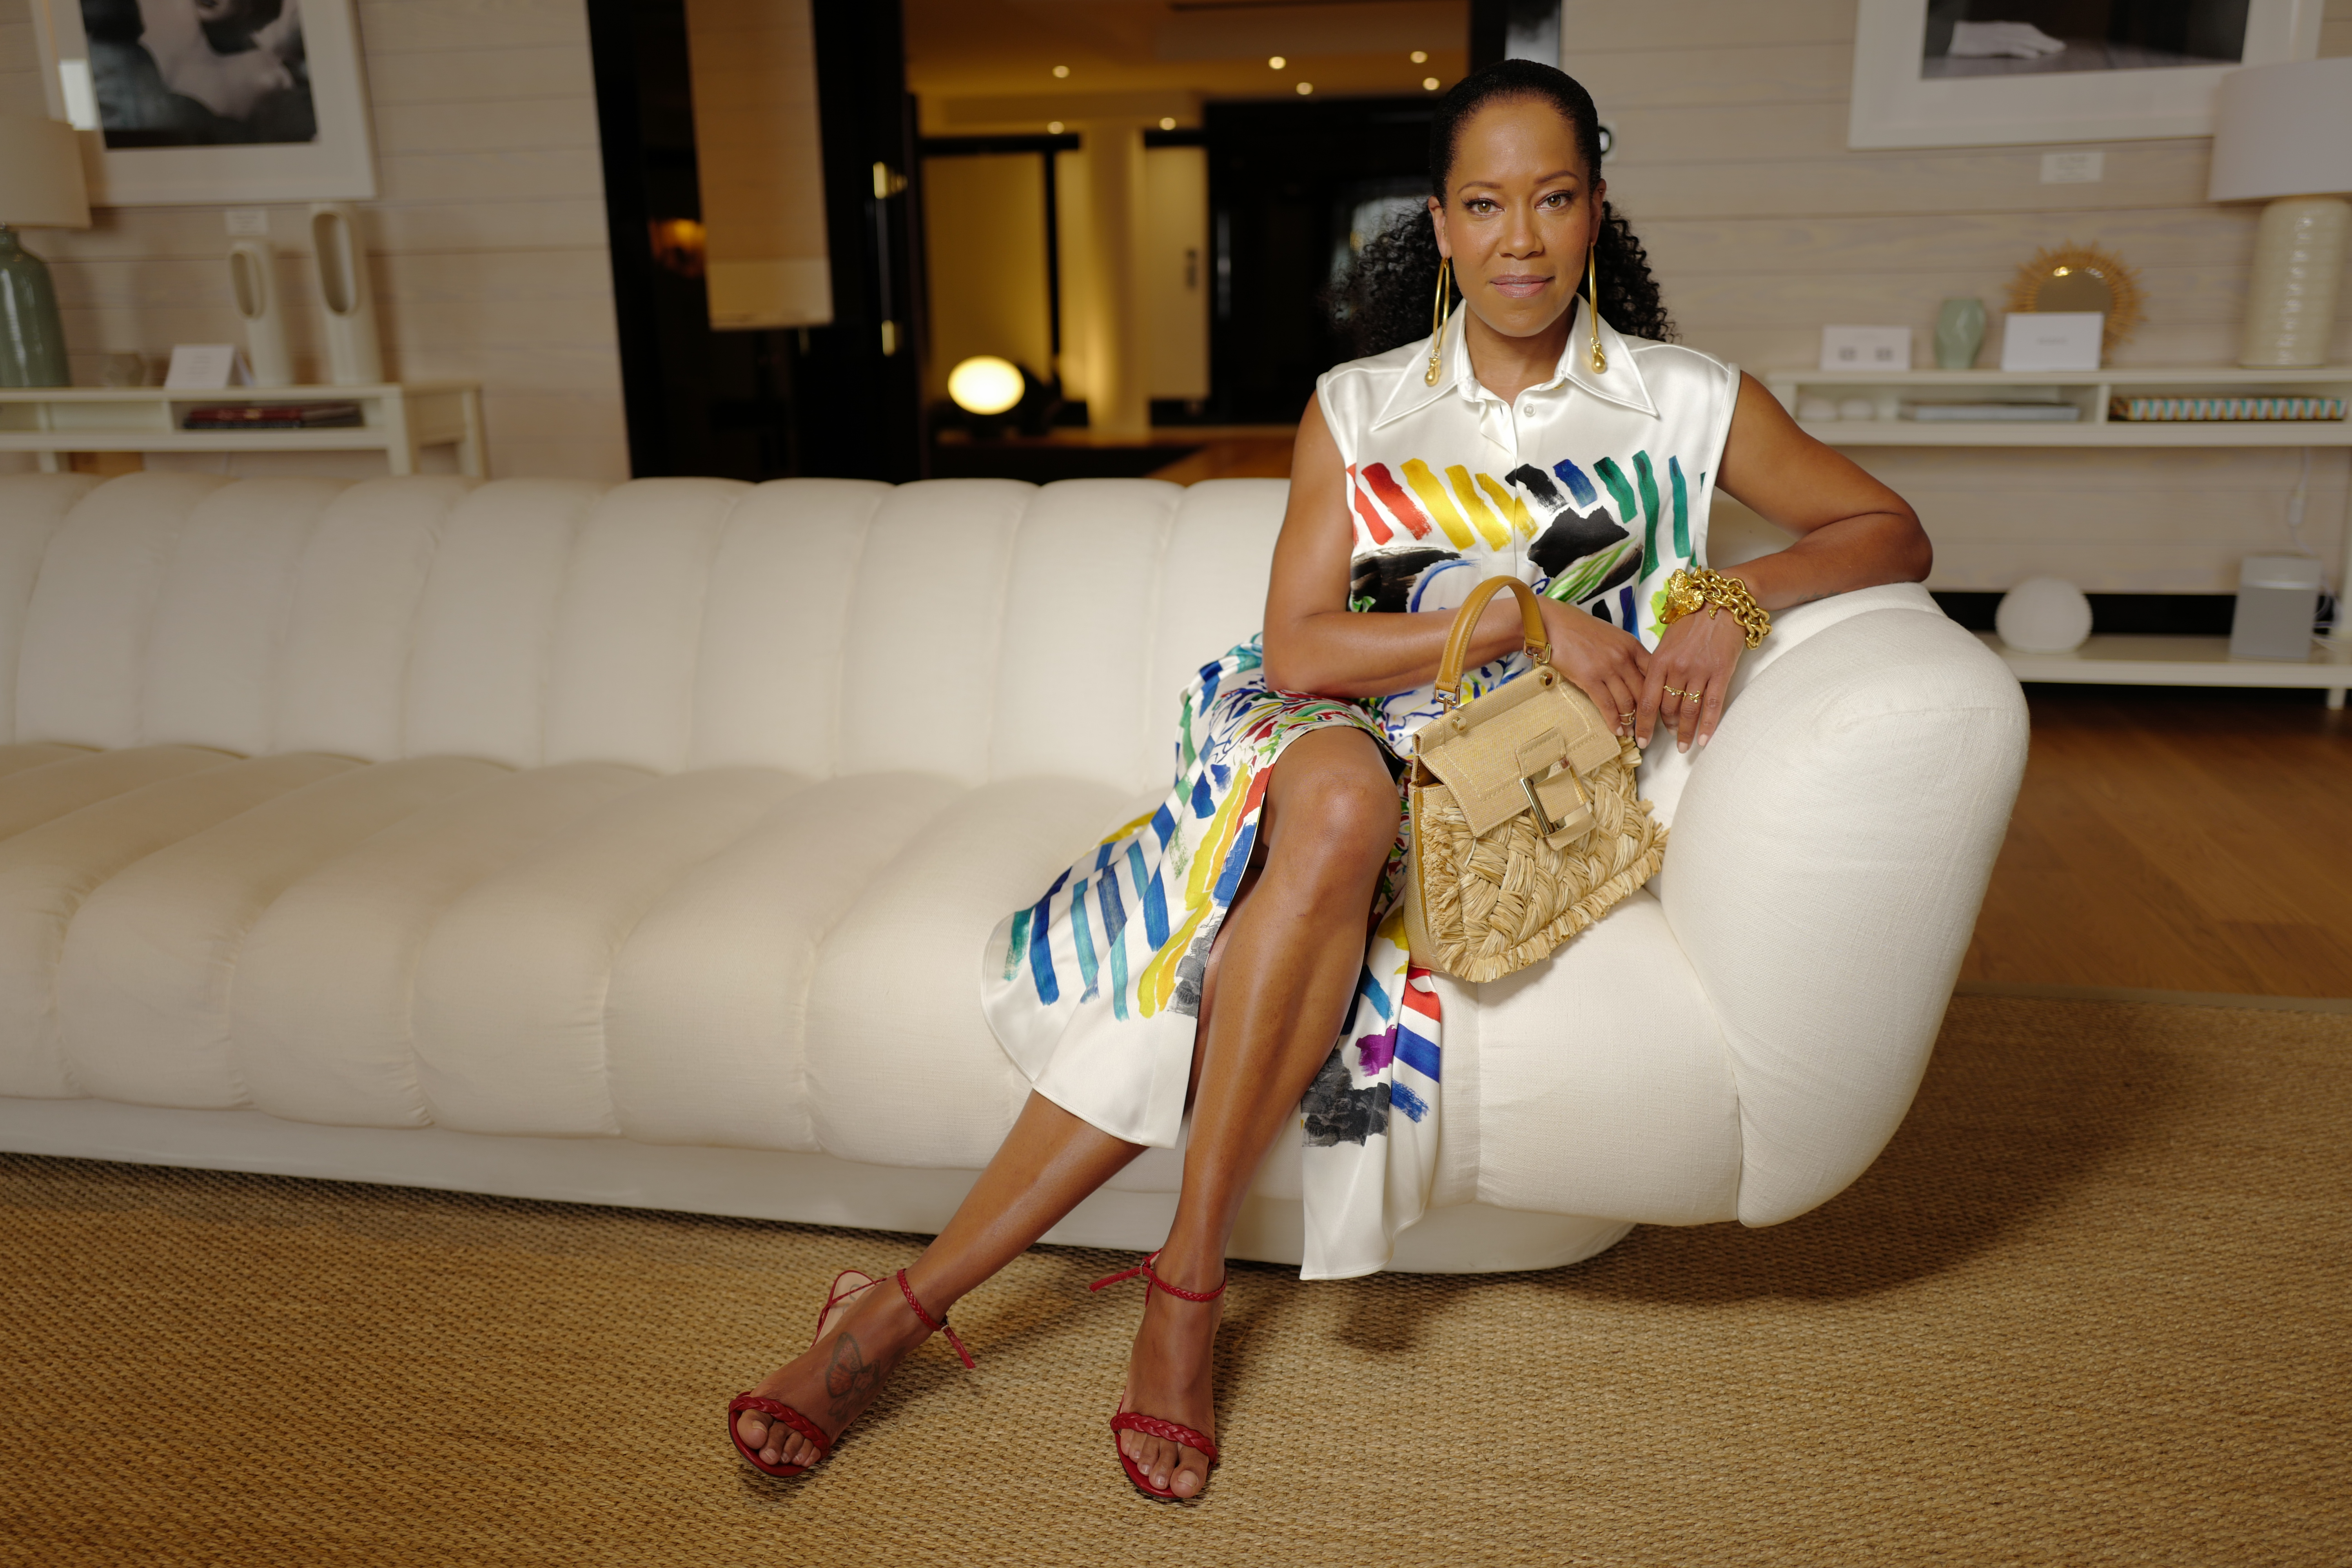 Regina King at the Majestic in Cannes